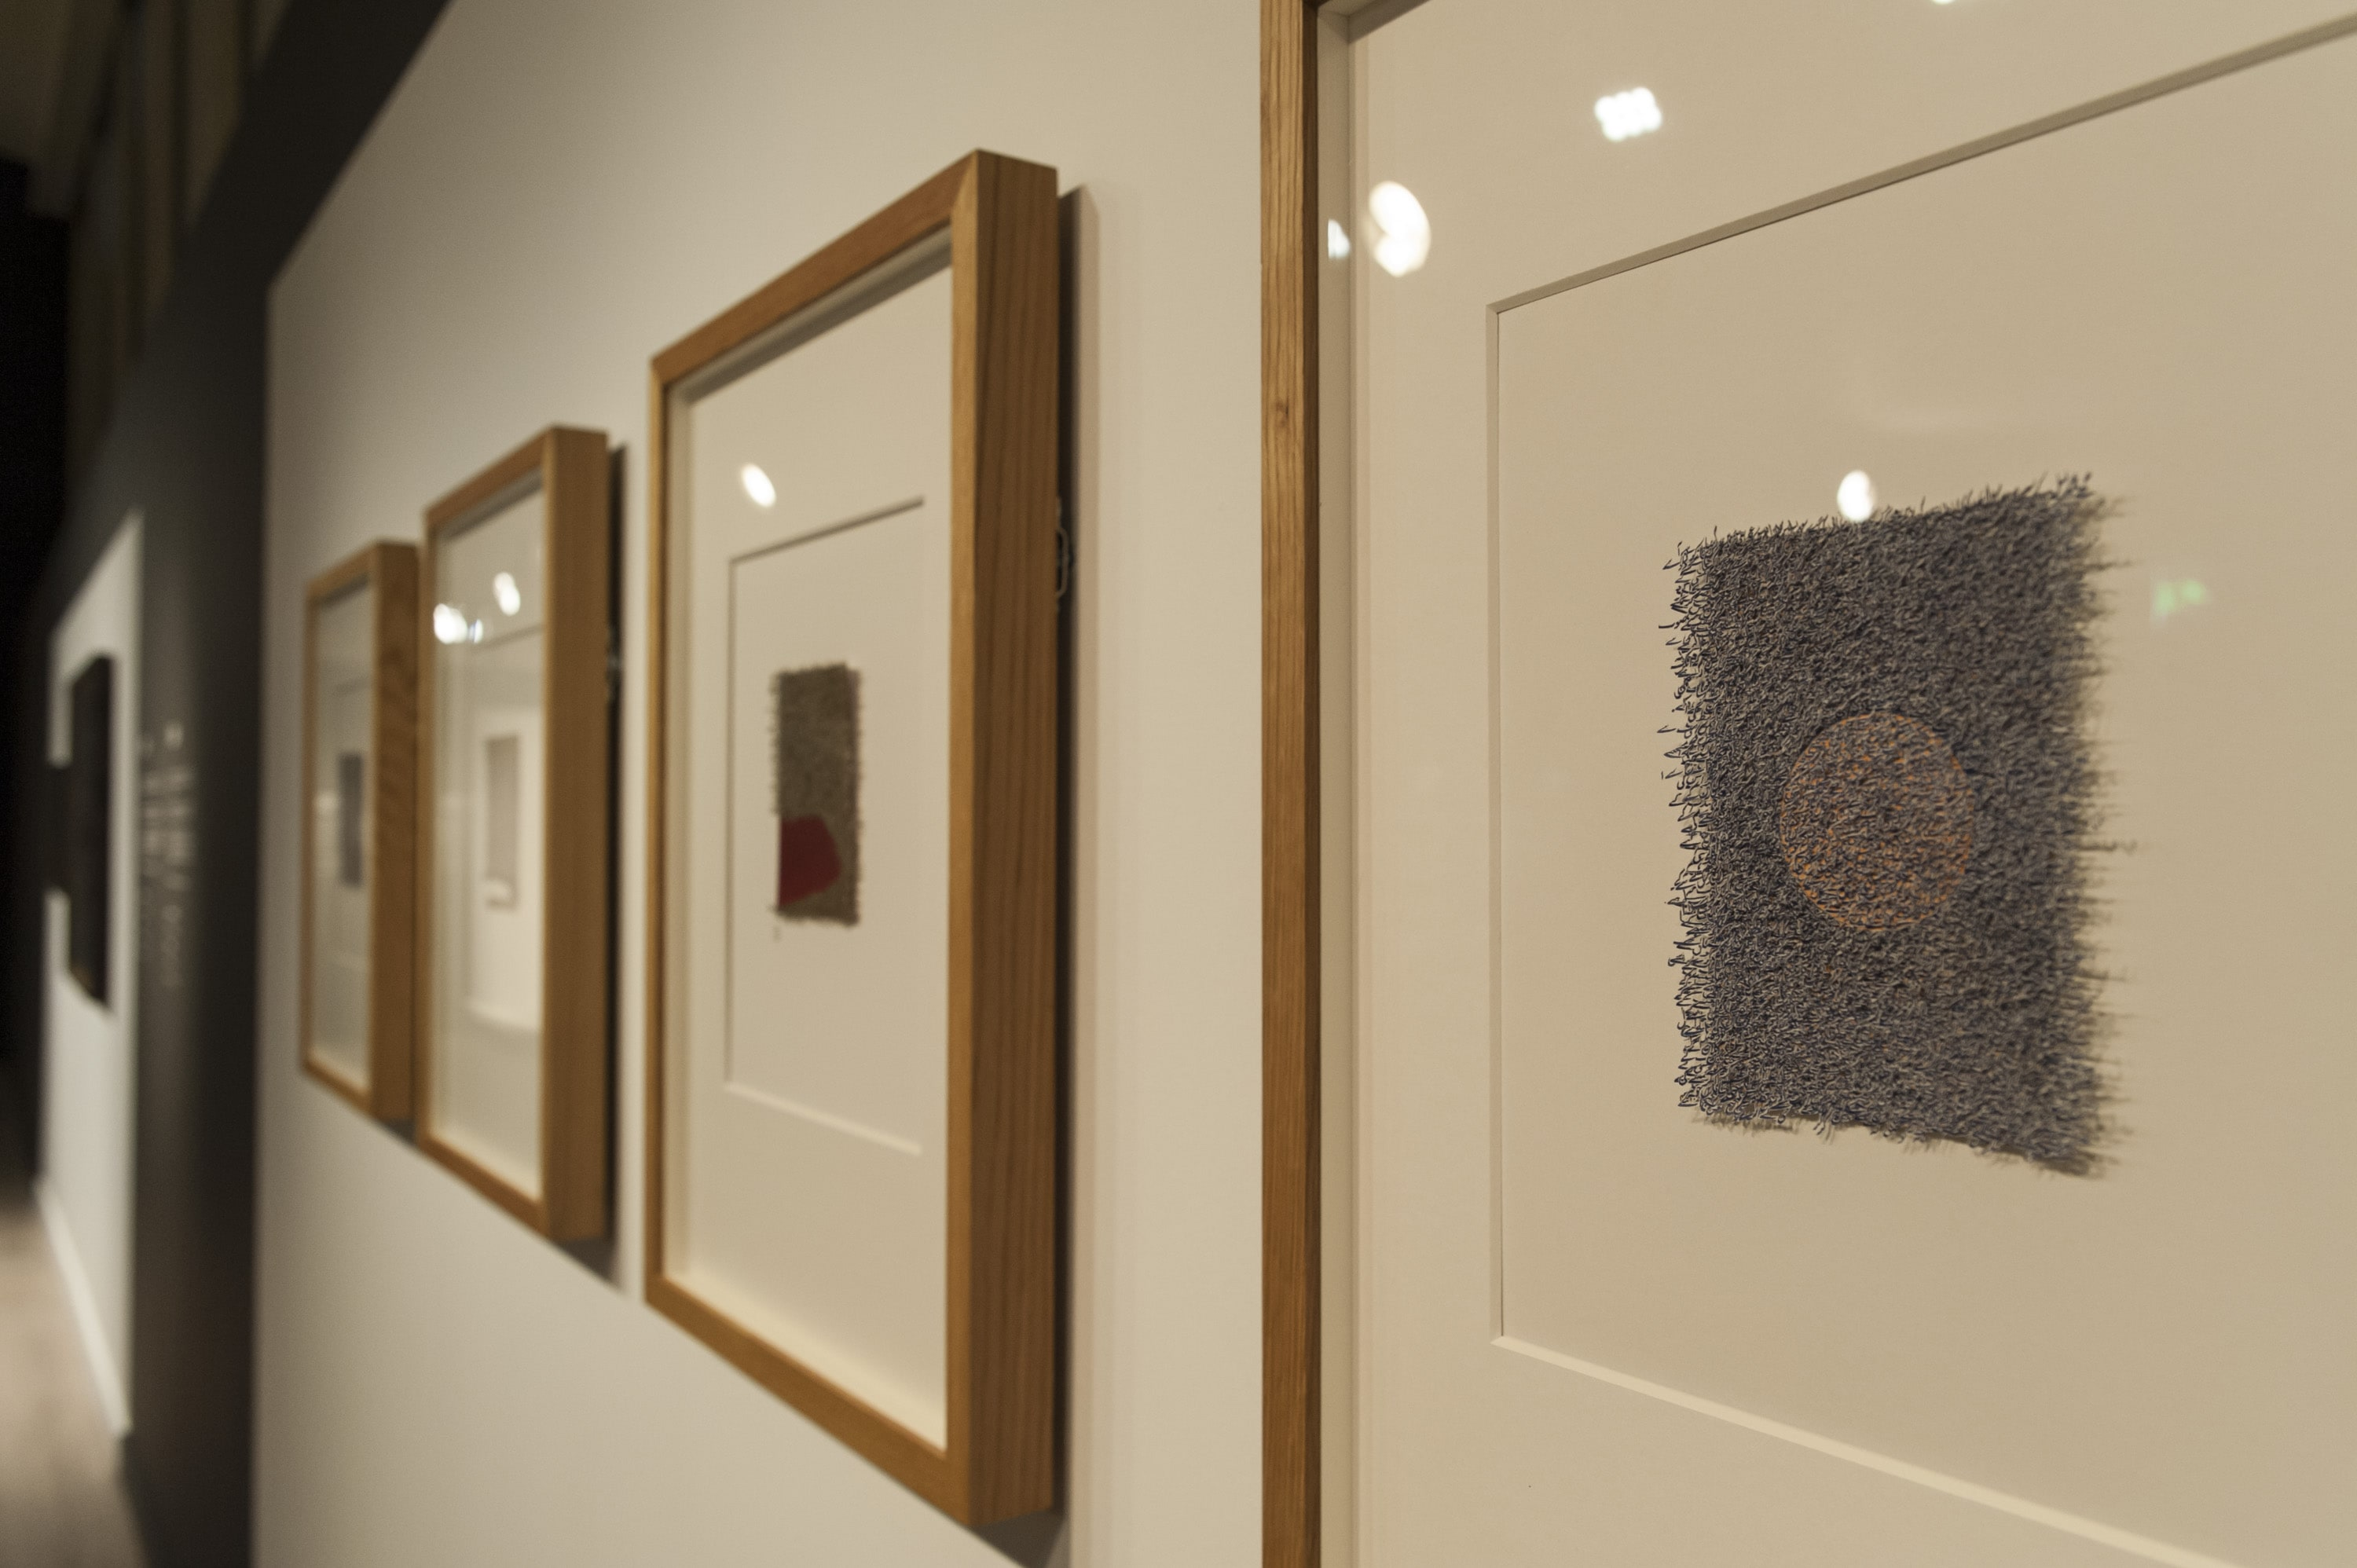 Jameel Prize 4 gallery 13